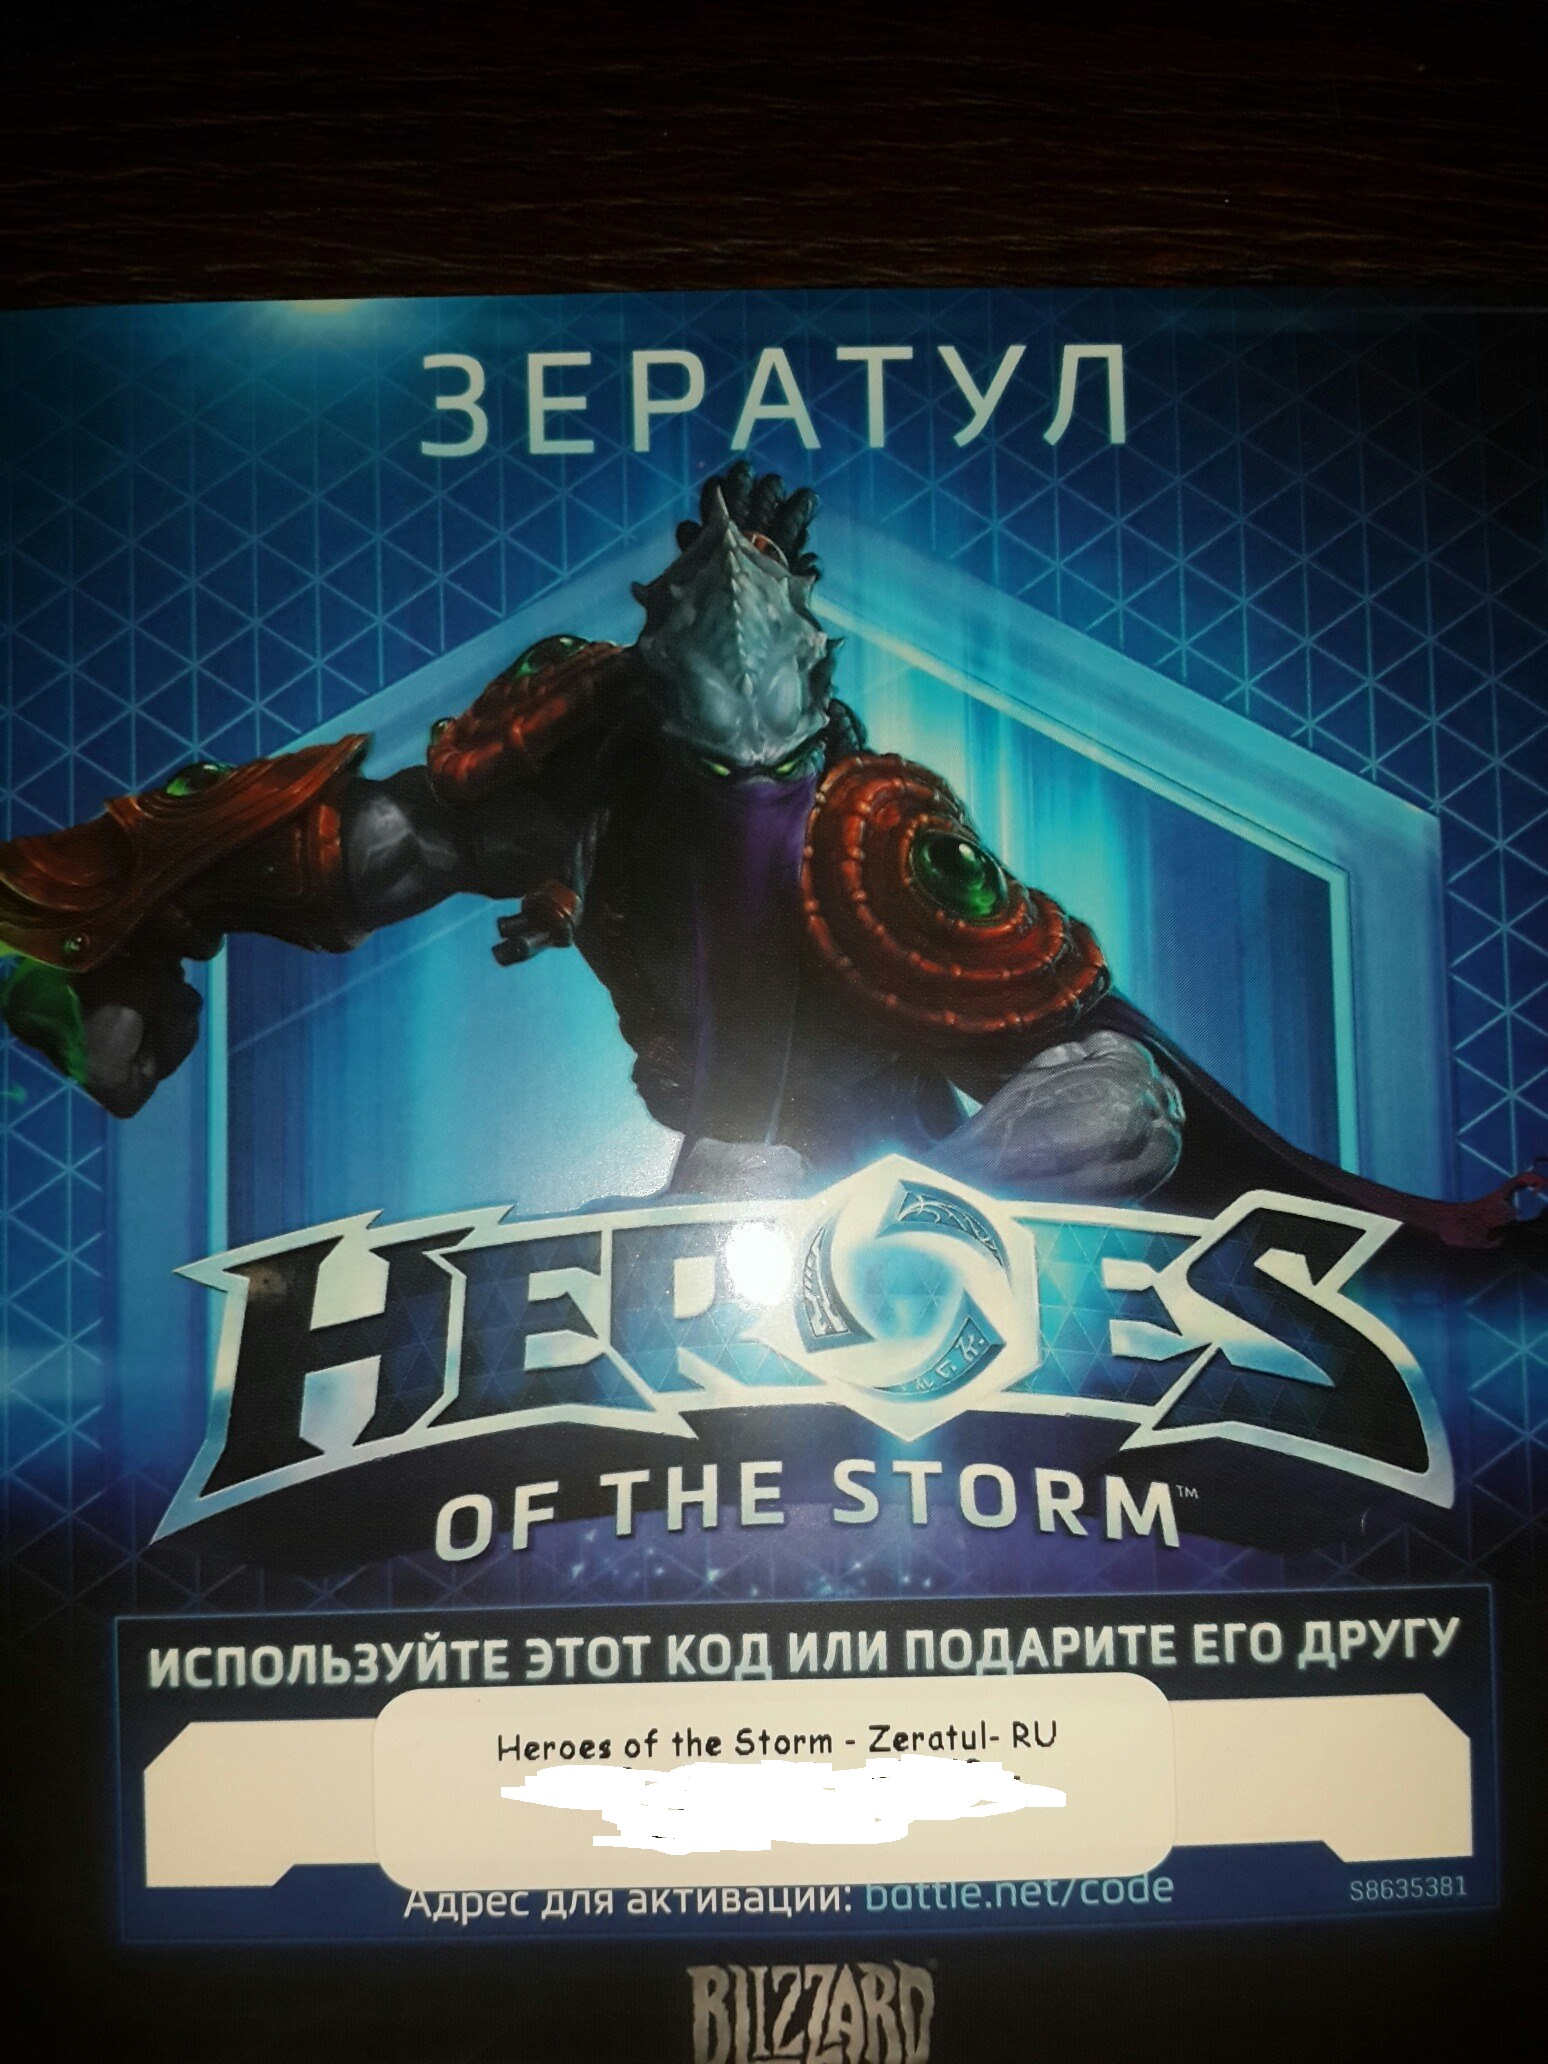 Heroes of the Storm - Zeratul hero (Battle.net)